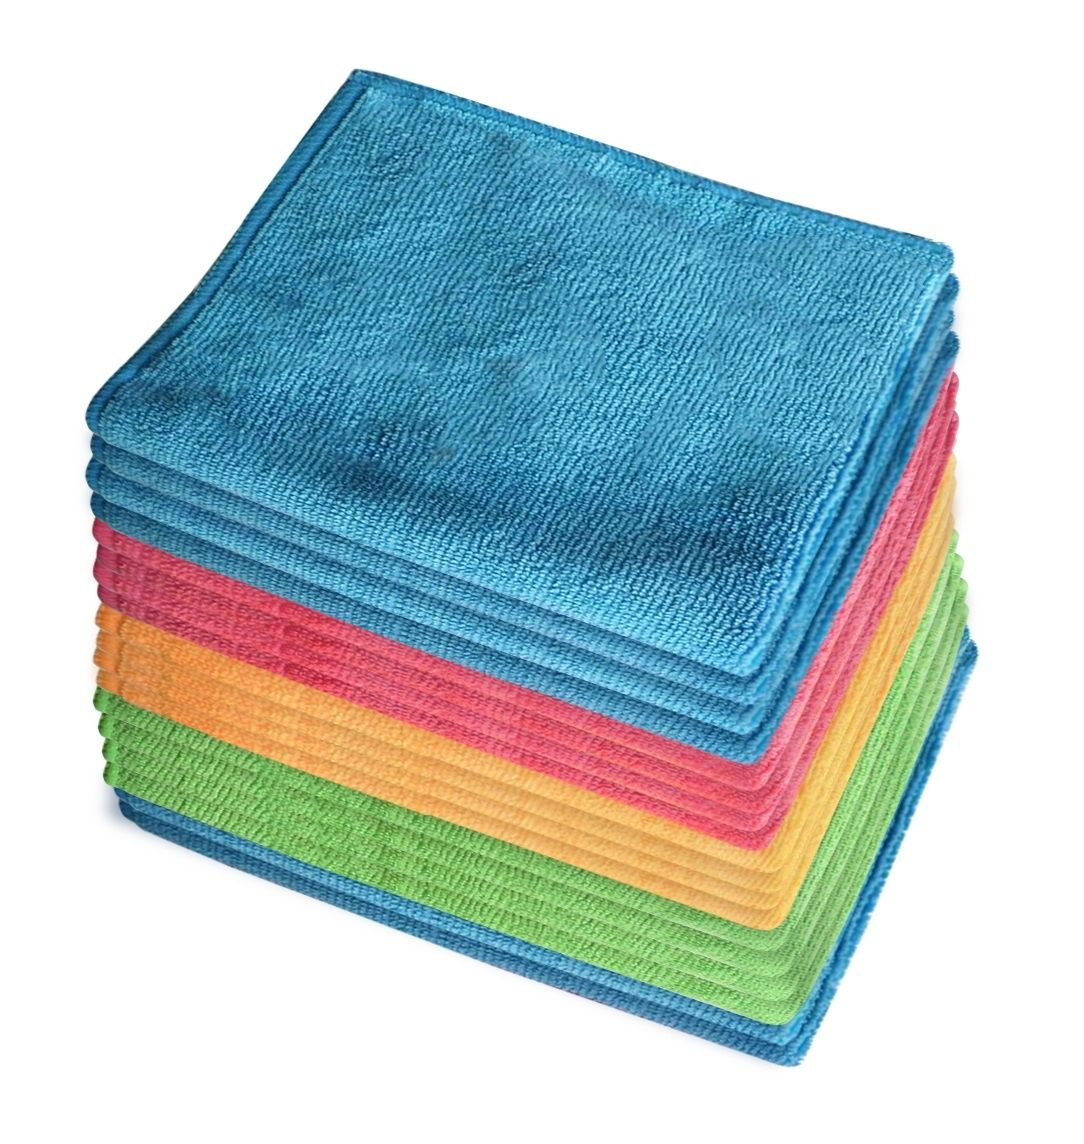 18x Microfibre Cleaning Cloth Microfiber Dish Car Gym Towel Glass 210GSM 40x30cm 1